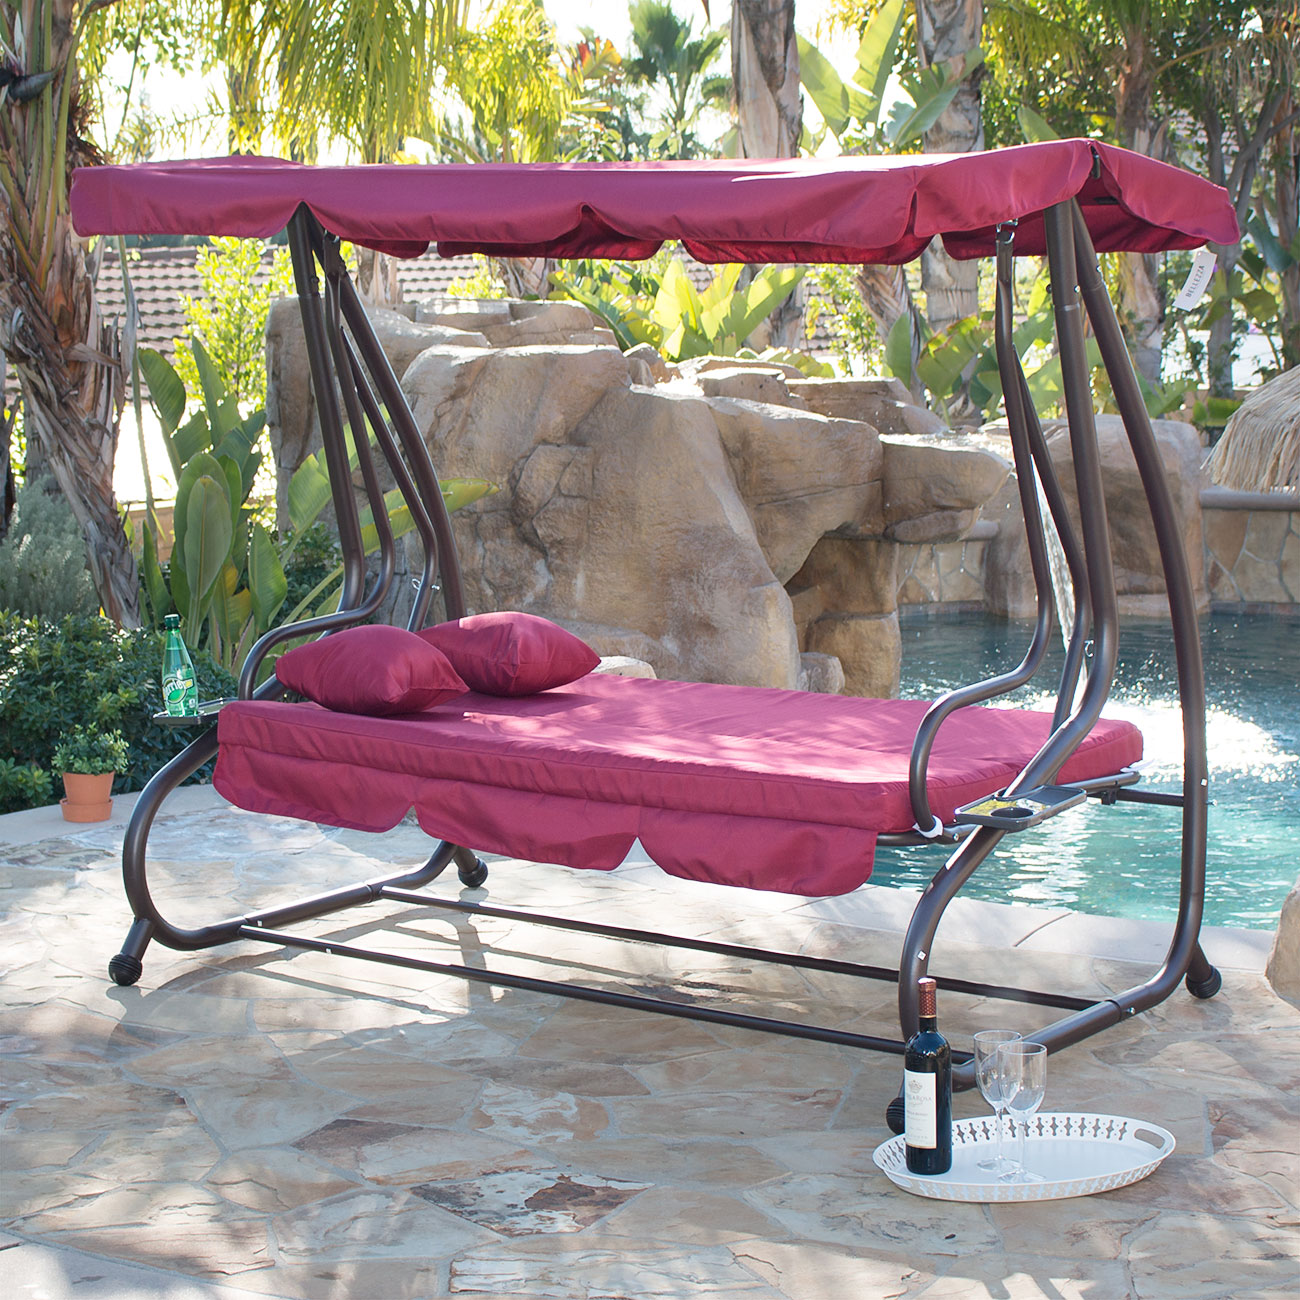 Outdoor Canopy Swing/Bed Patio Deck Garden Porch Seat Furniture Chair Burgundy & Outdoor Canopy Swing/Bed Patio Deck Garden Porch Seat Furniture ...